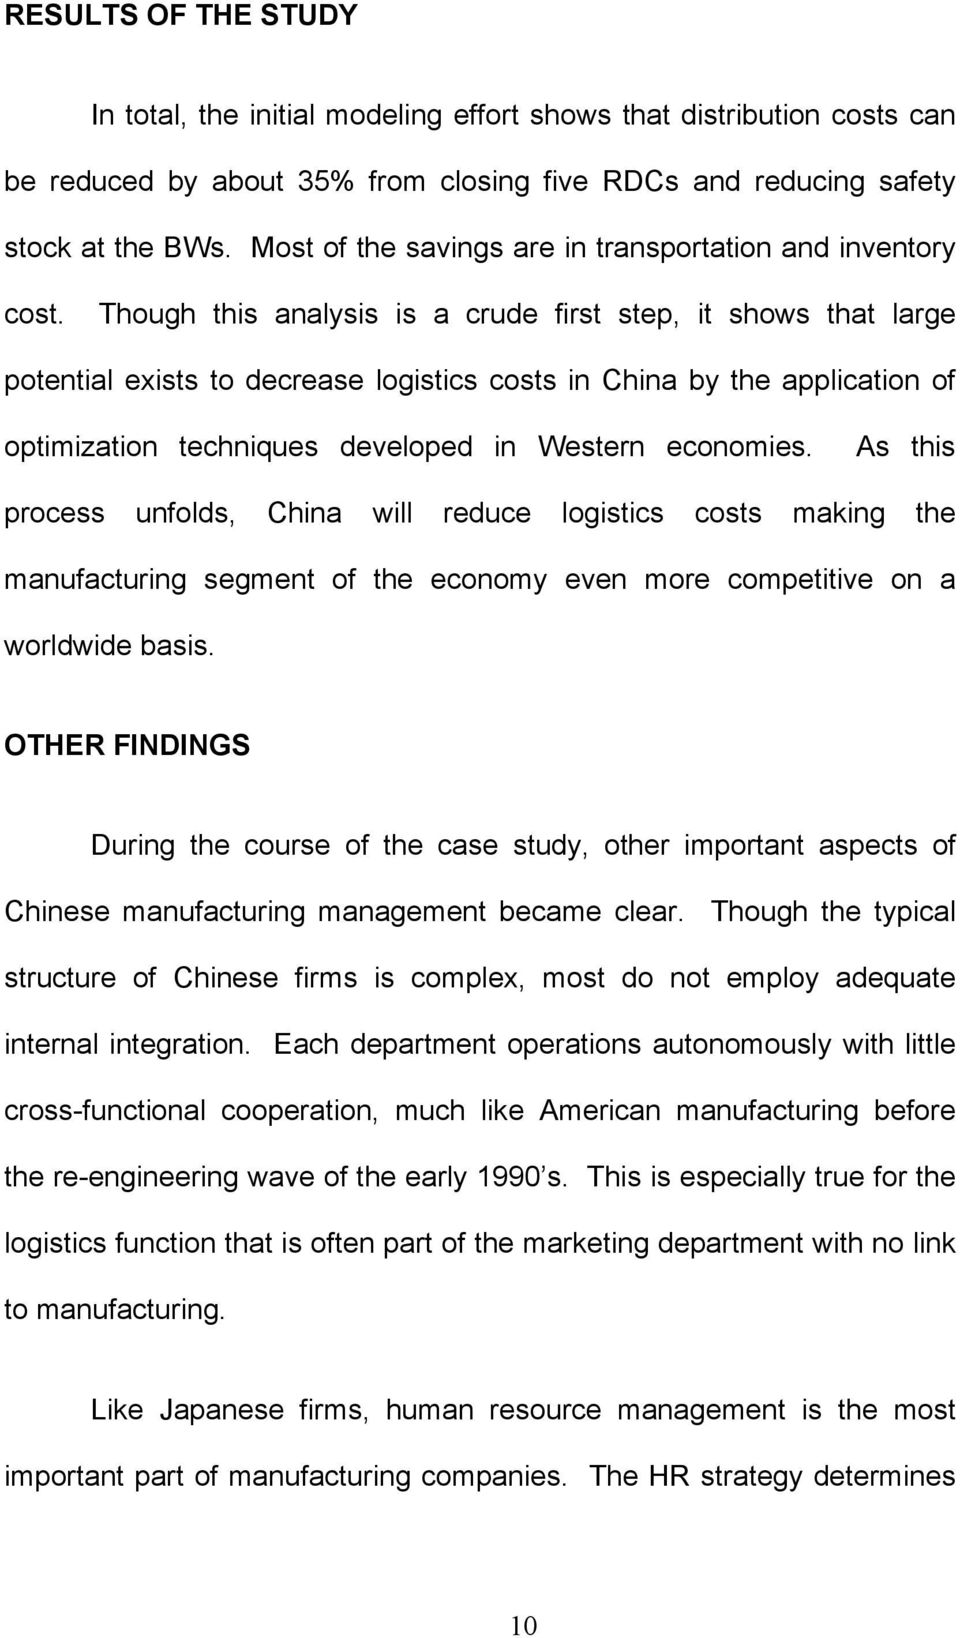 Though this analysis is a crude first step, it shows that large potential exists to decrease logistics costs in China by the application of optimization techniques developed in Western economies.